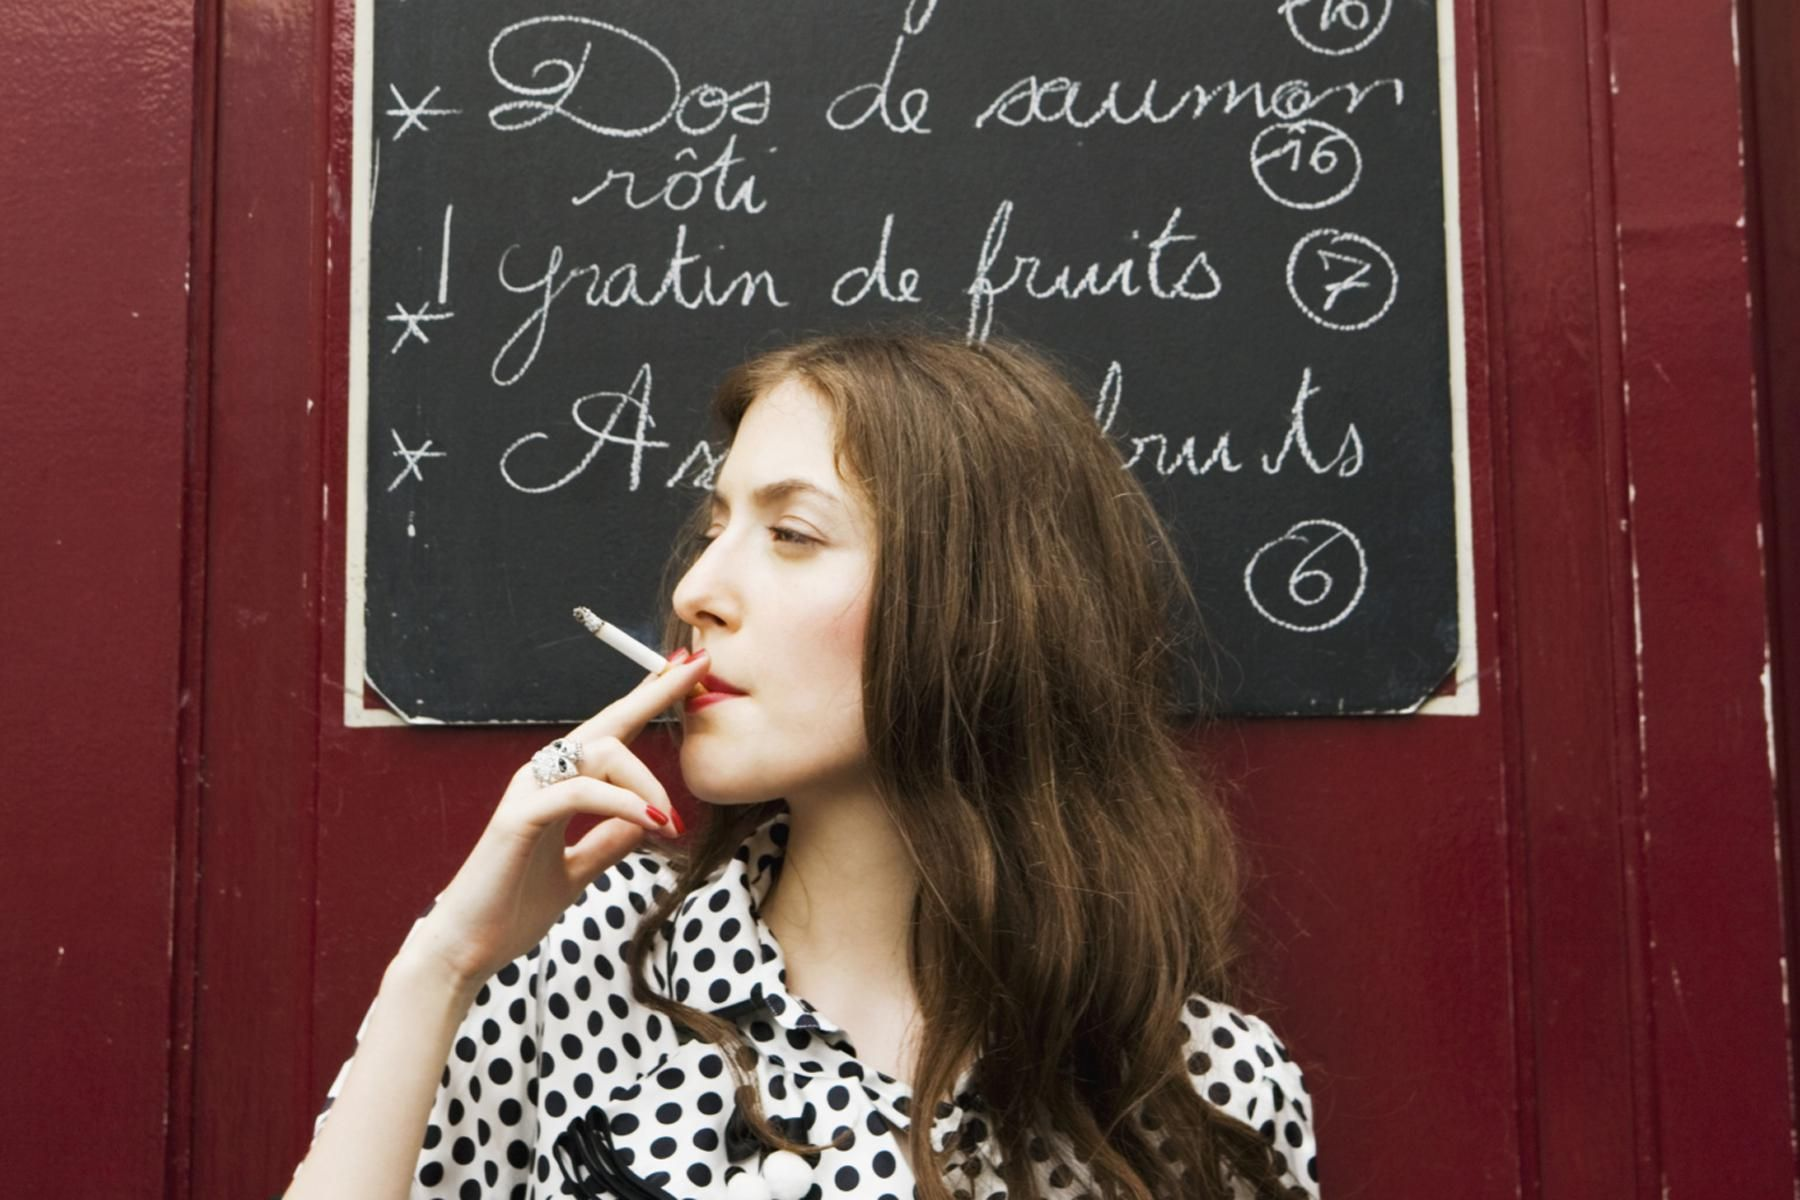 Myths About France And French People The Stereotypes